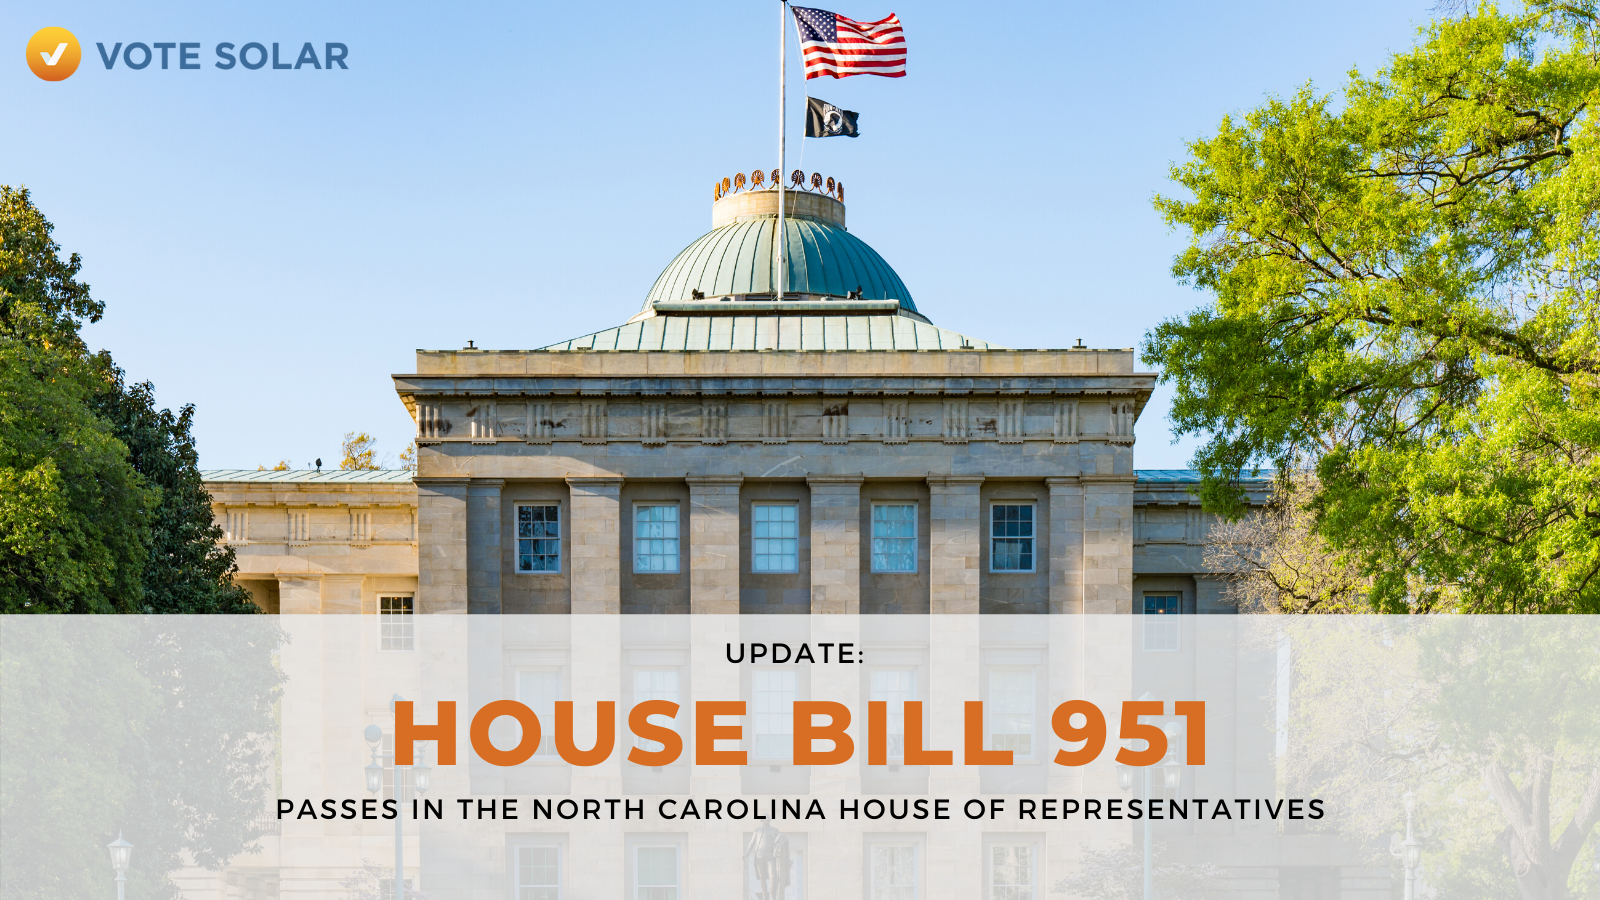 North Carolina's clean energy bill HB951 must put families over utility shareholders